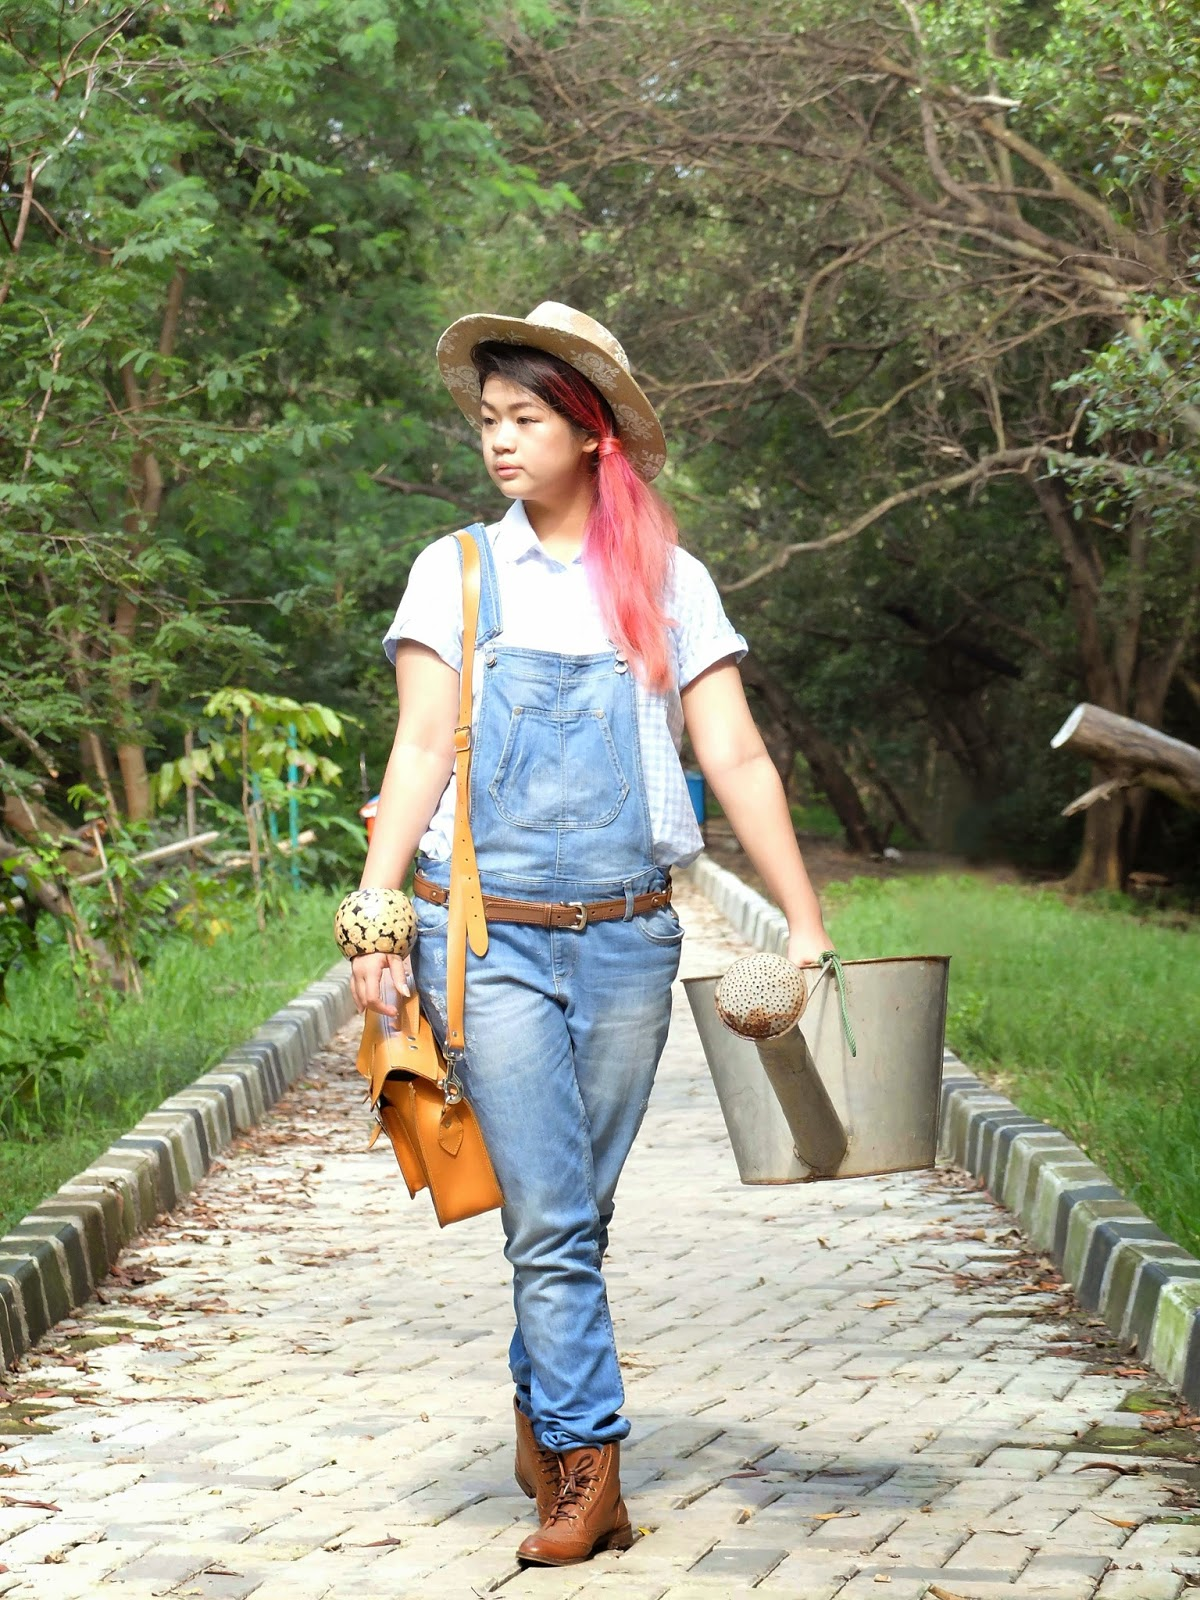 pink hair, side pony tail, stradivarius overall, stradivarius cowboy boots